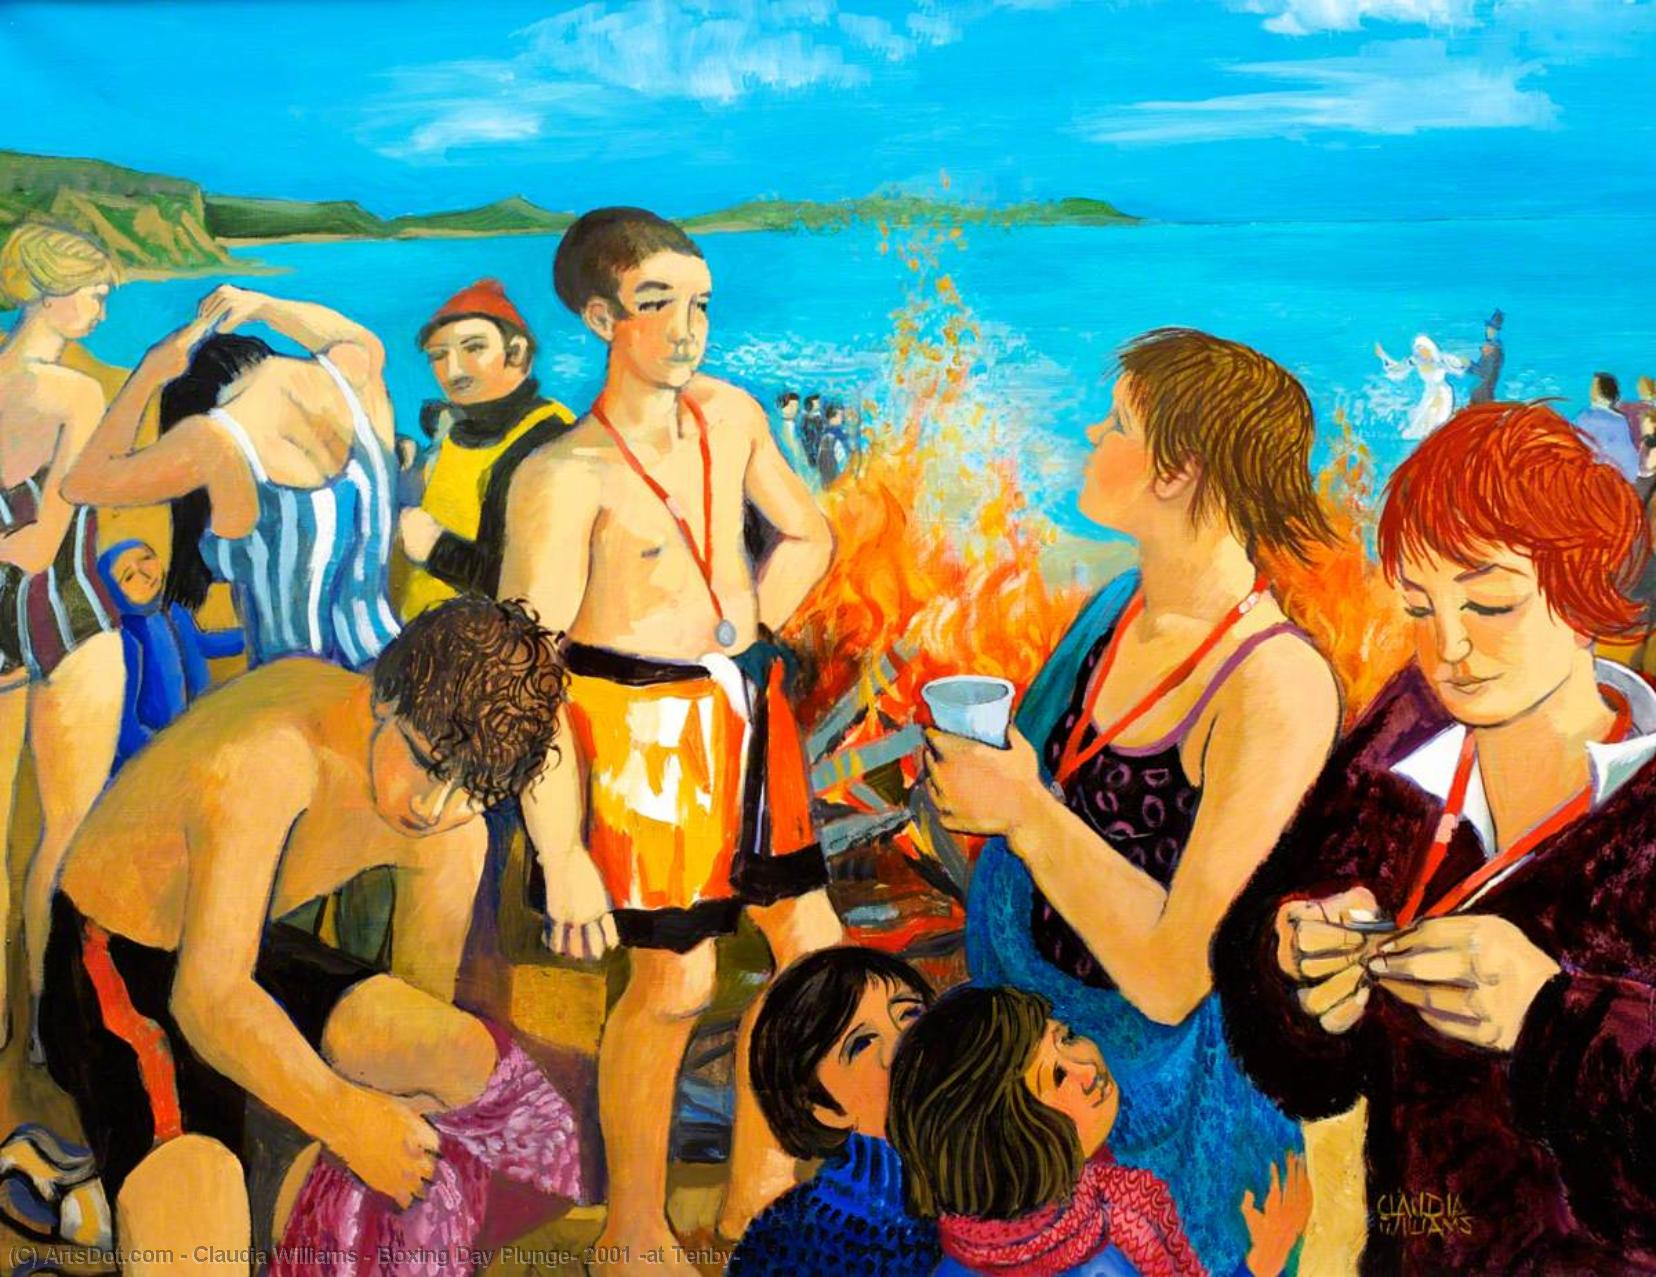 Wikioo.org - The Encyclopedia of Fine Arts - Painting, Artwork by Claudia Williams - Boxing Day Plunge, 2001 (at Tenby)